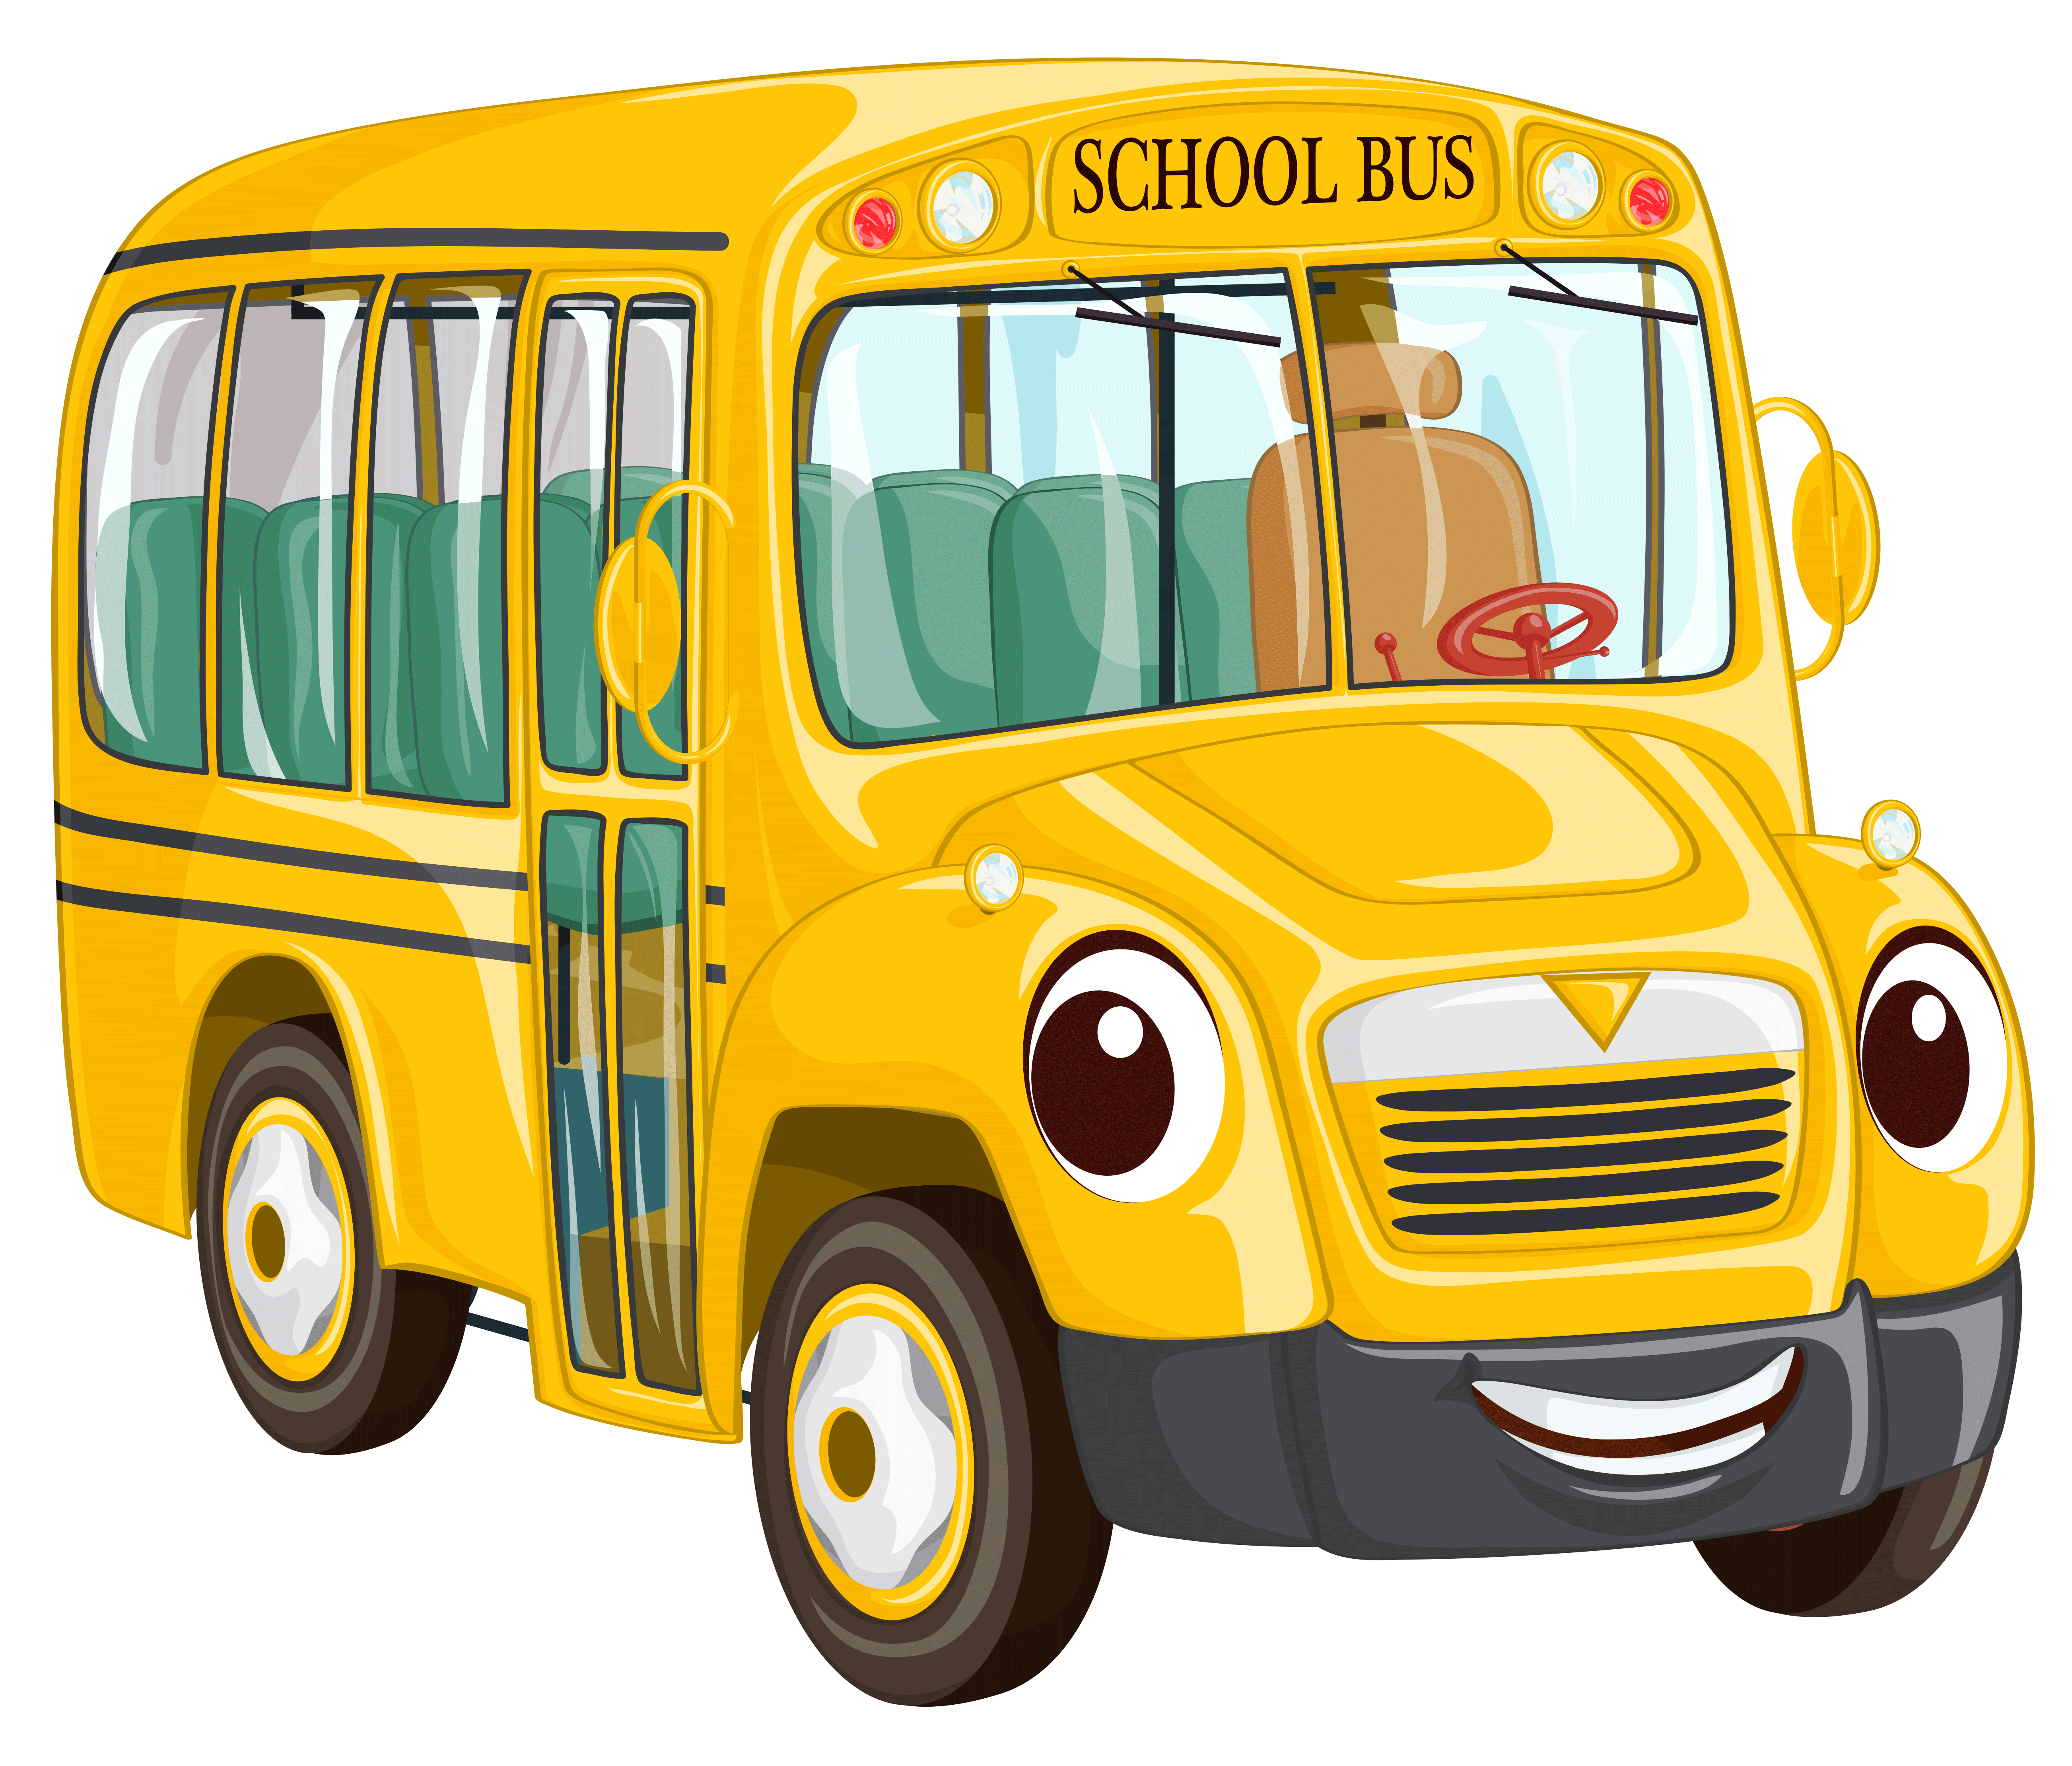 School bus clipart free image black and white library Cartoon Buses Group (64+) image black and white library